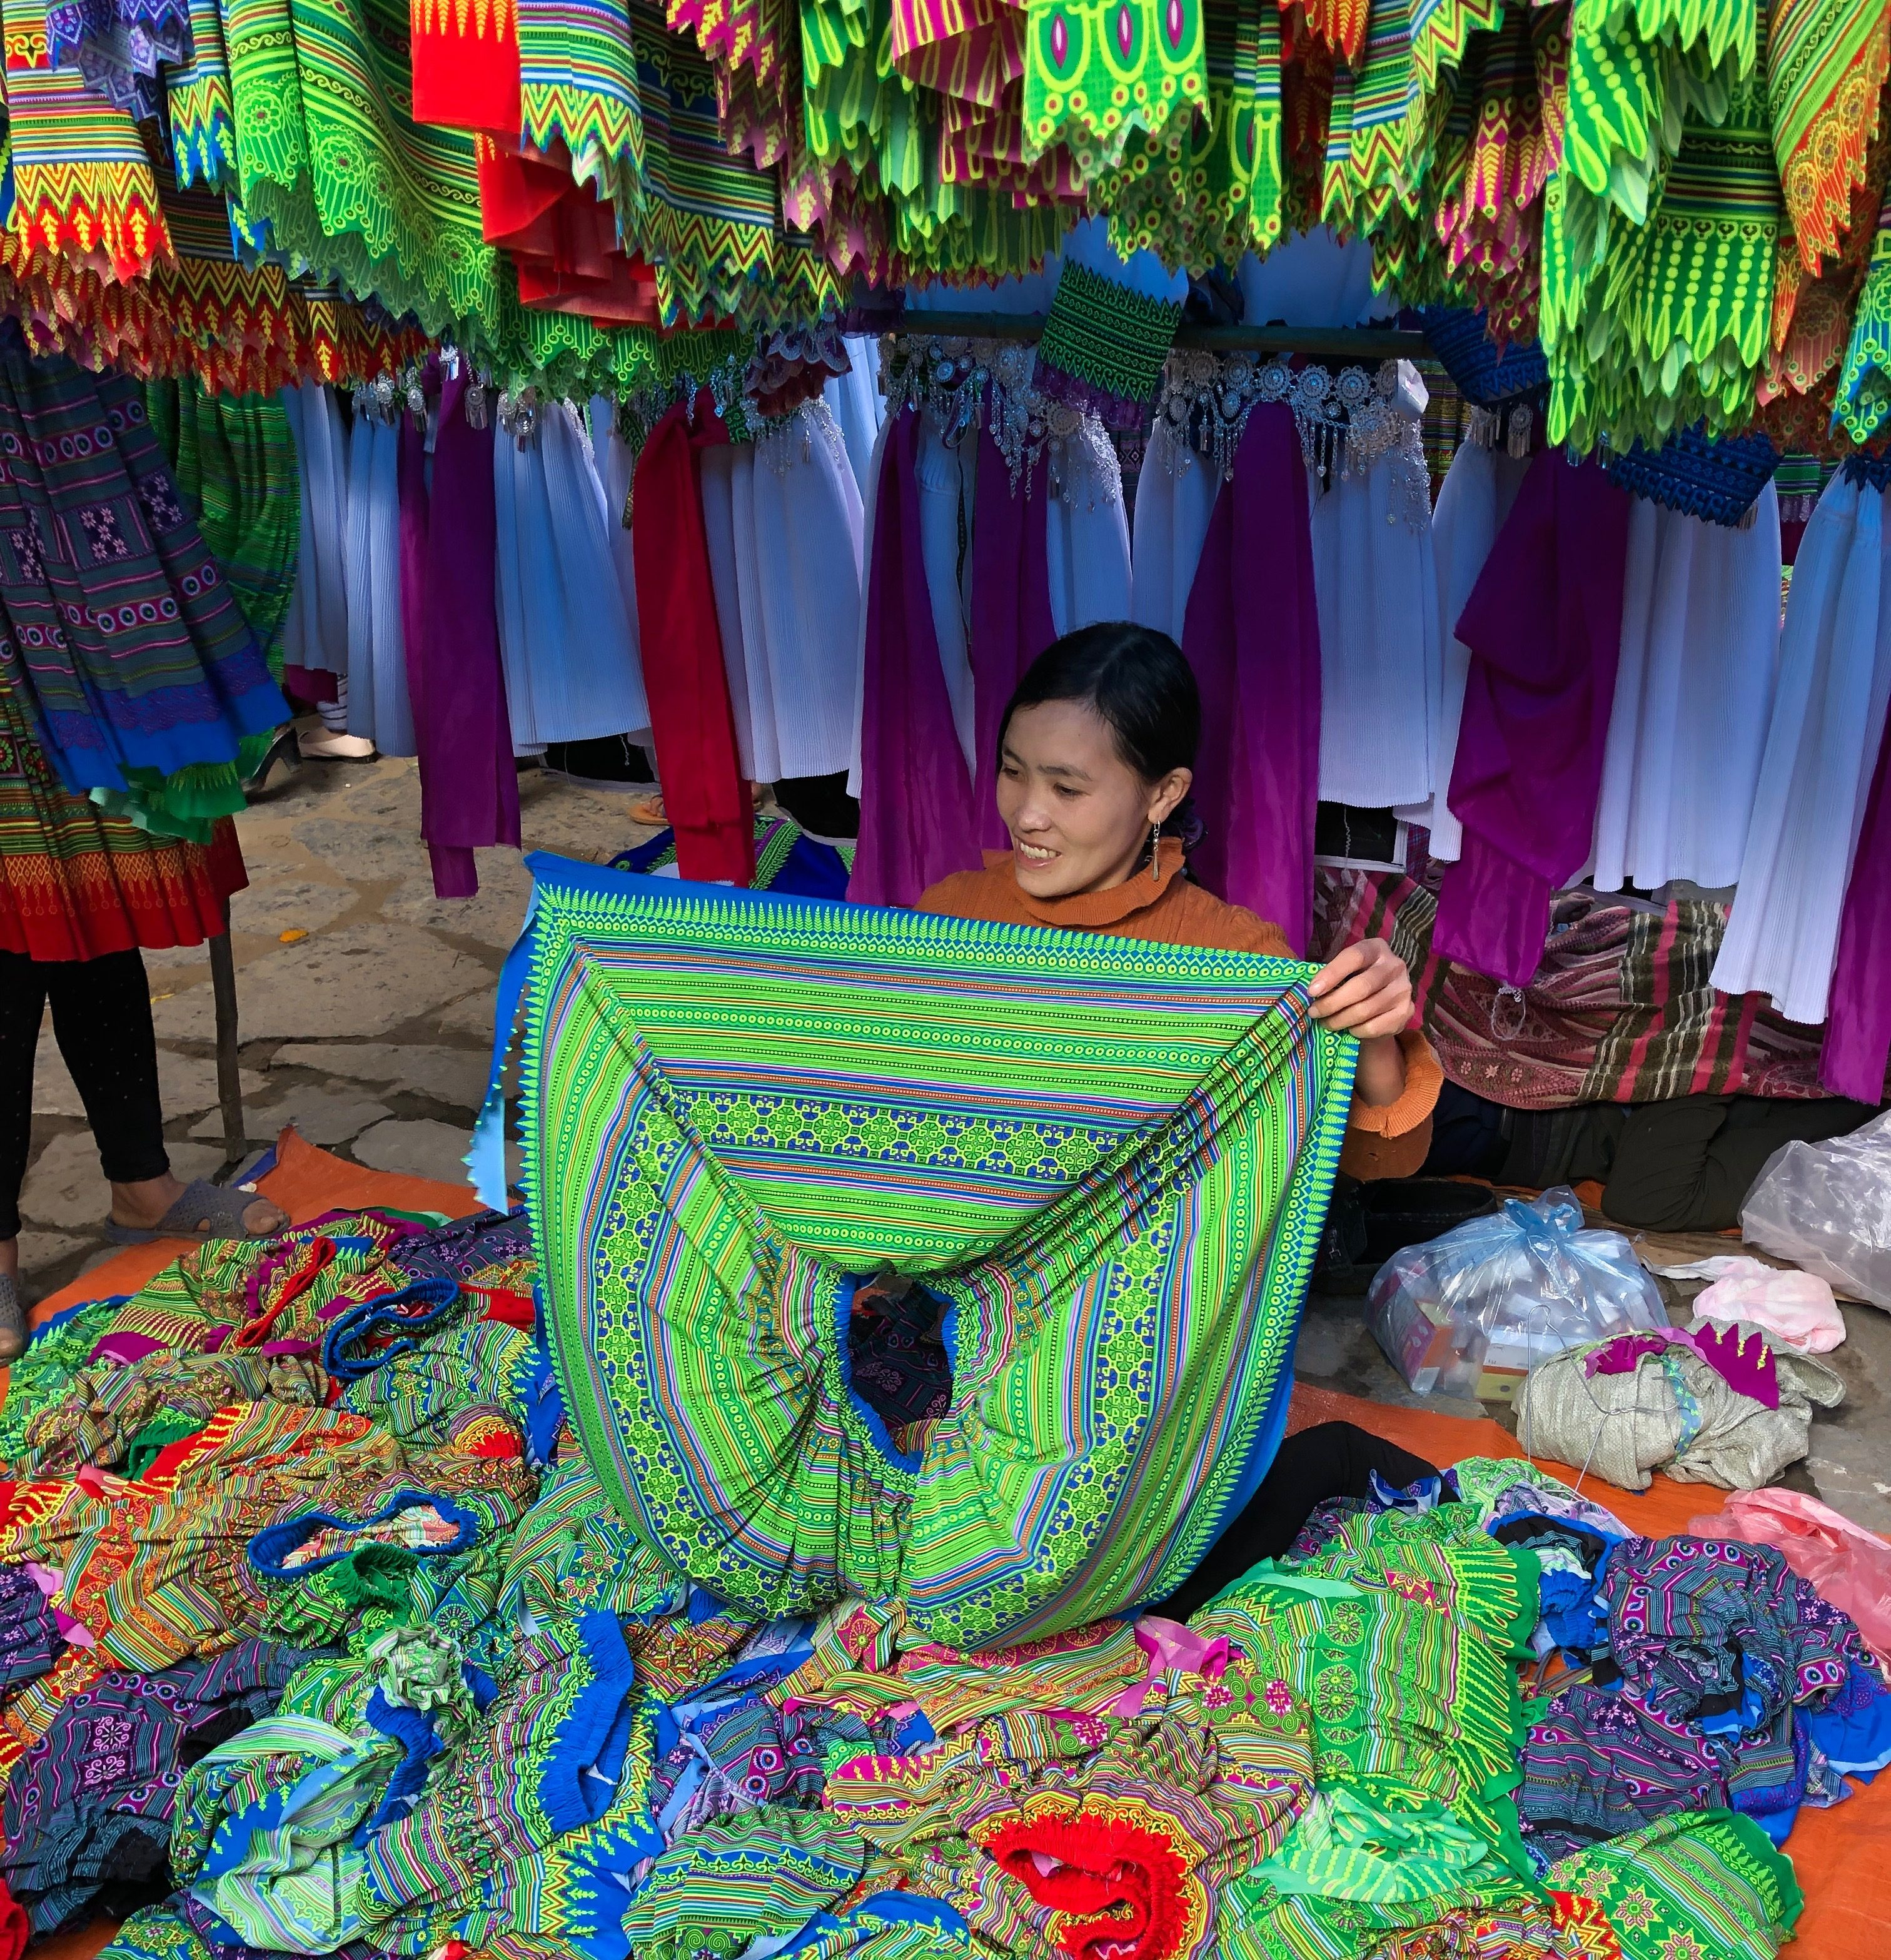 Visit Vietnam's colorful ethnic minority market in the mountains of Bac Ha